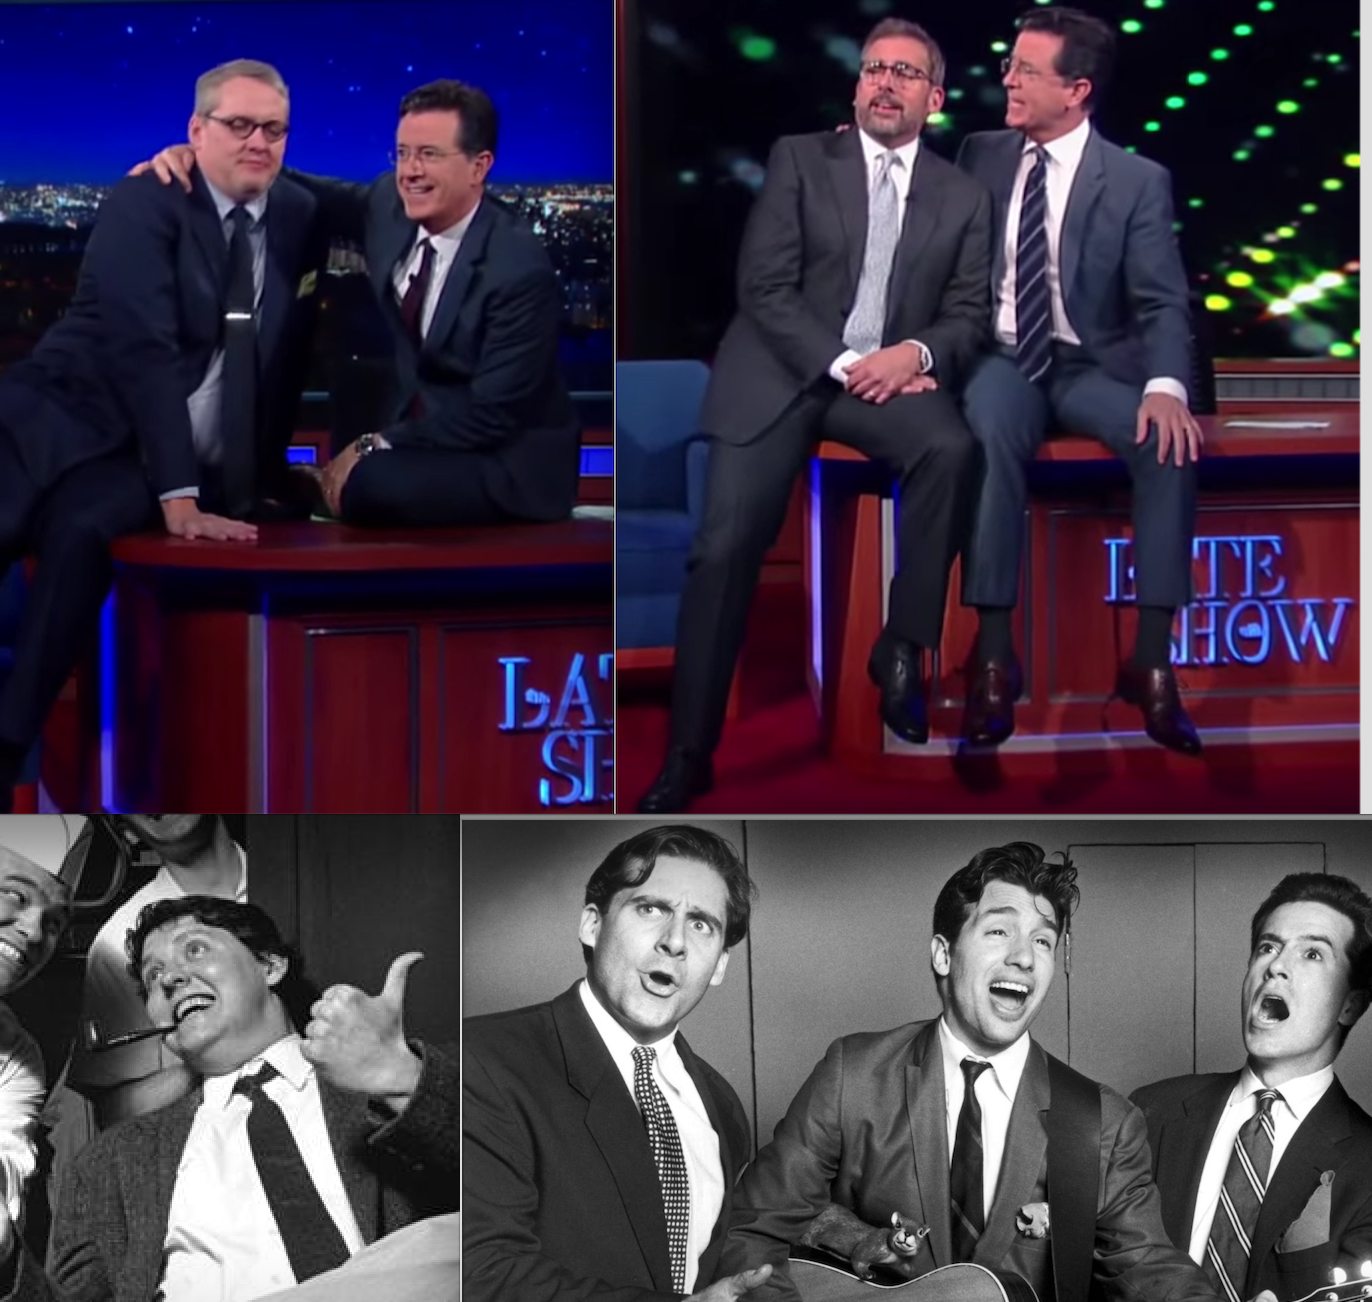 Stephen Colbert's nostalgic week with fellow Second City alums Steve Carell and Adam McKay